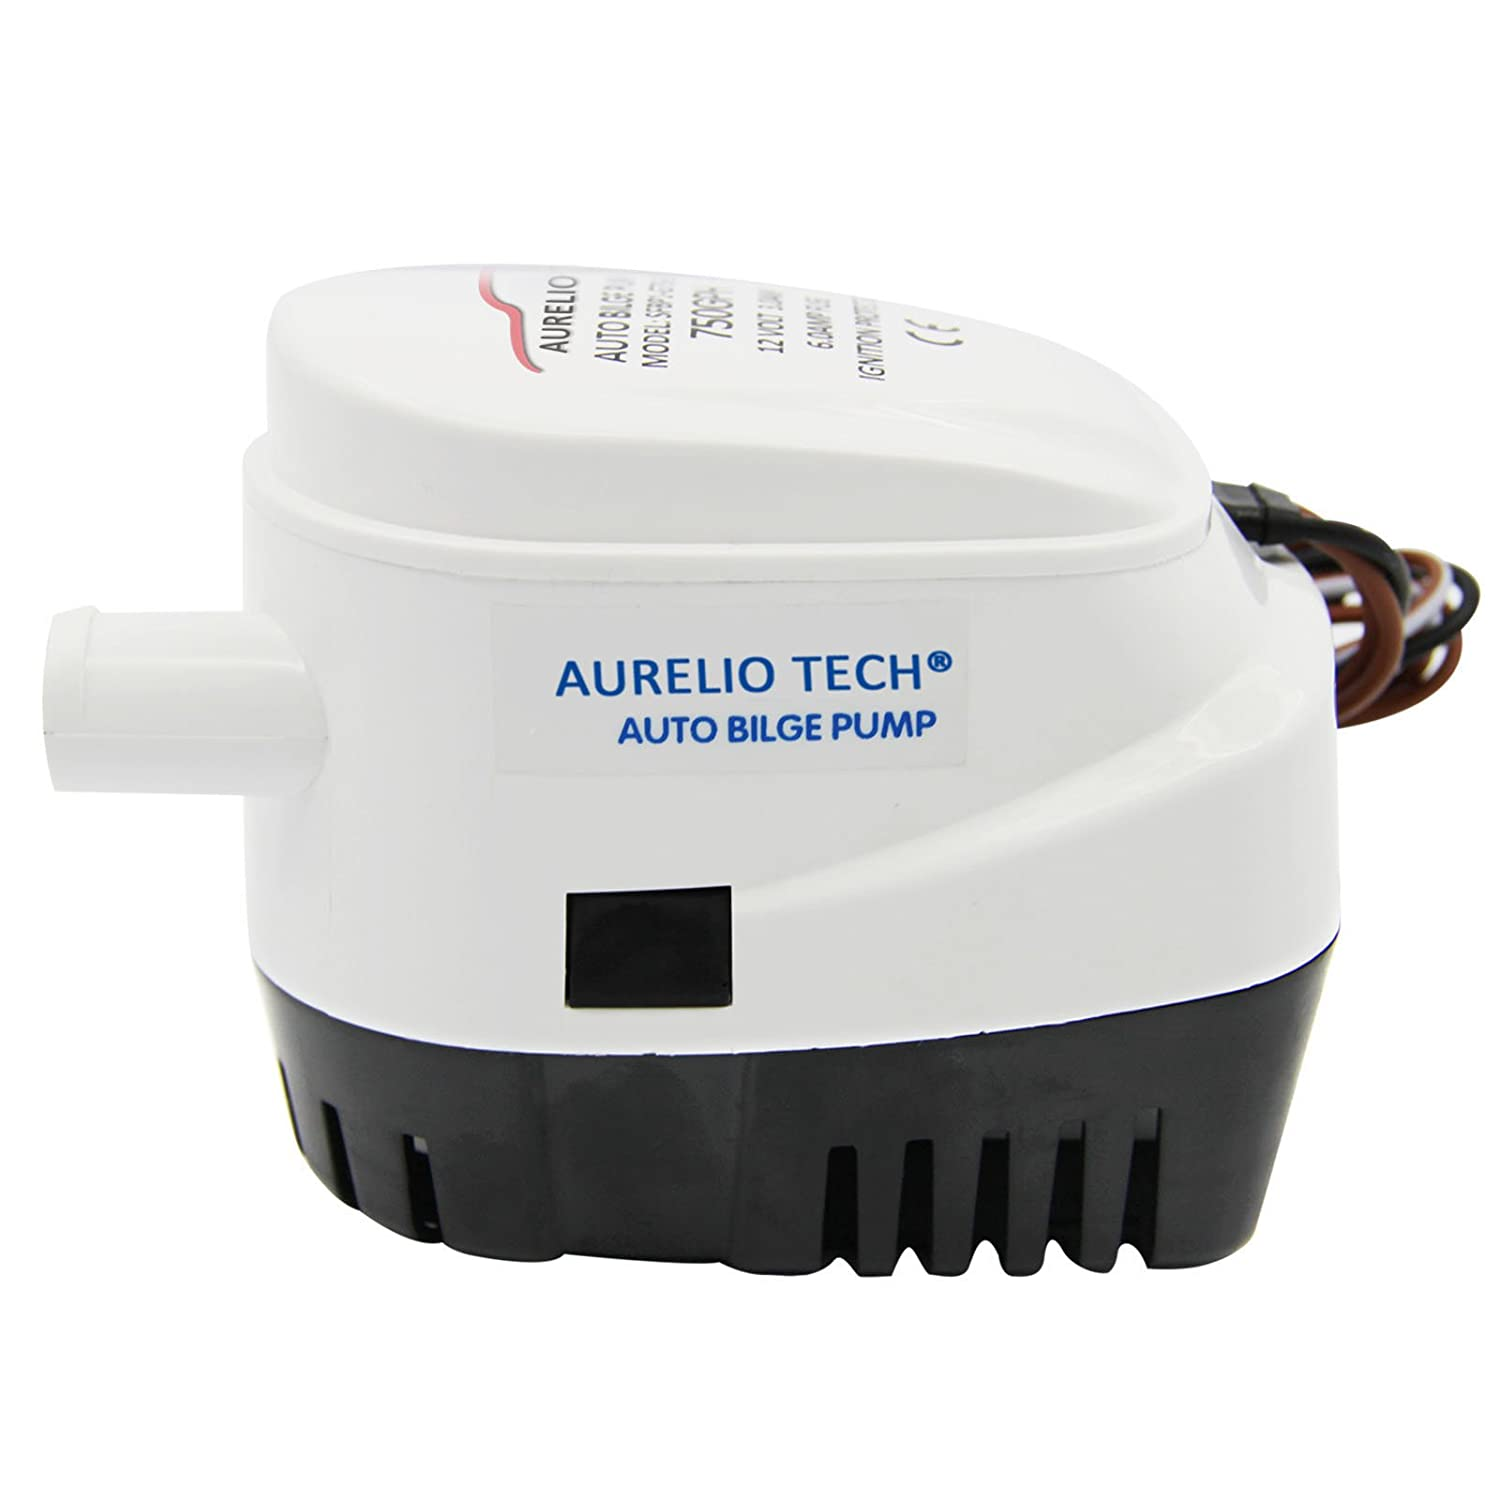 61X30Rmk3NL._SL1500_ amazon com aurelio tech 12v automatic submersible boat bilge attwood sahara bilge pump wiring diagram at nearapp.co